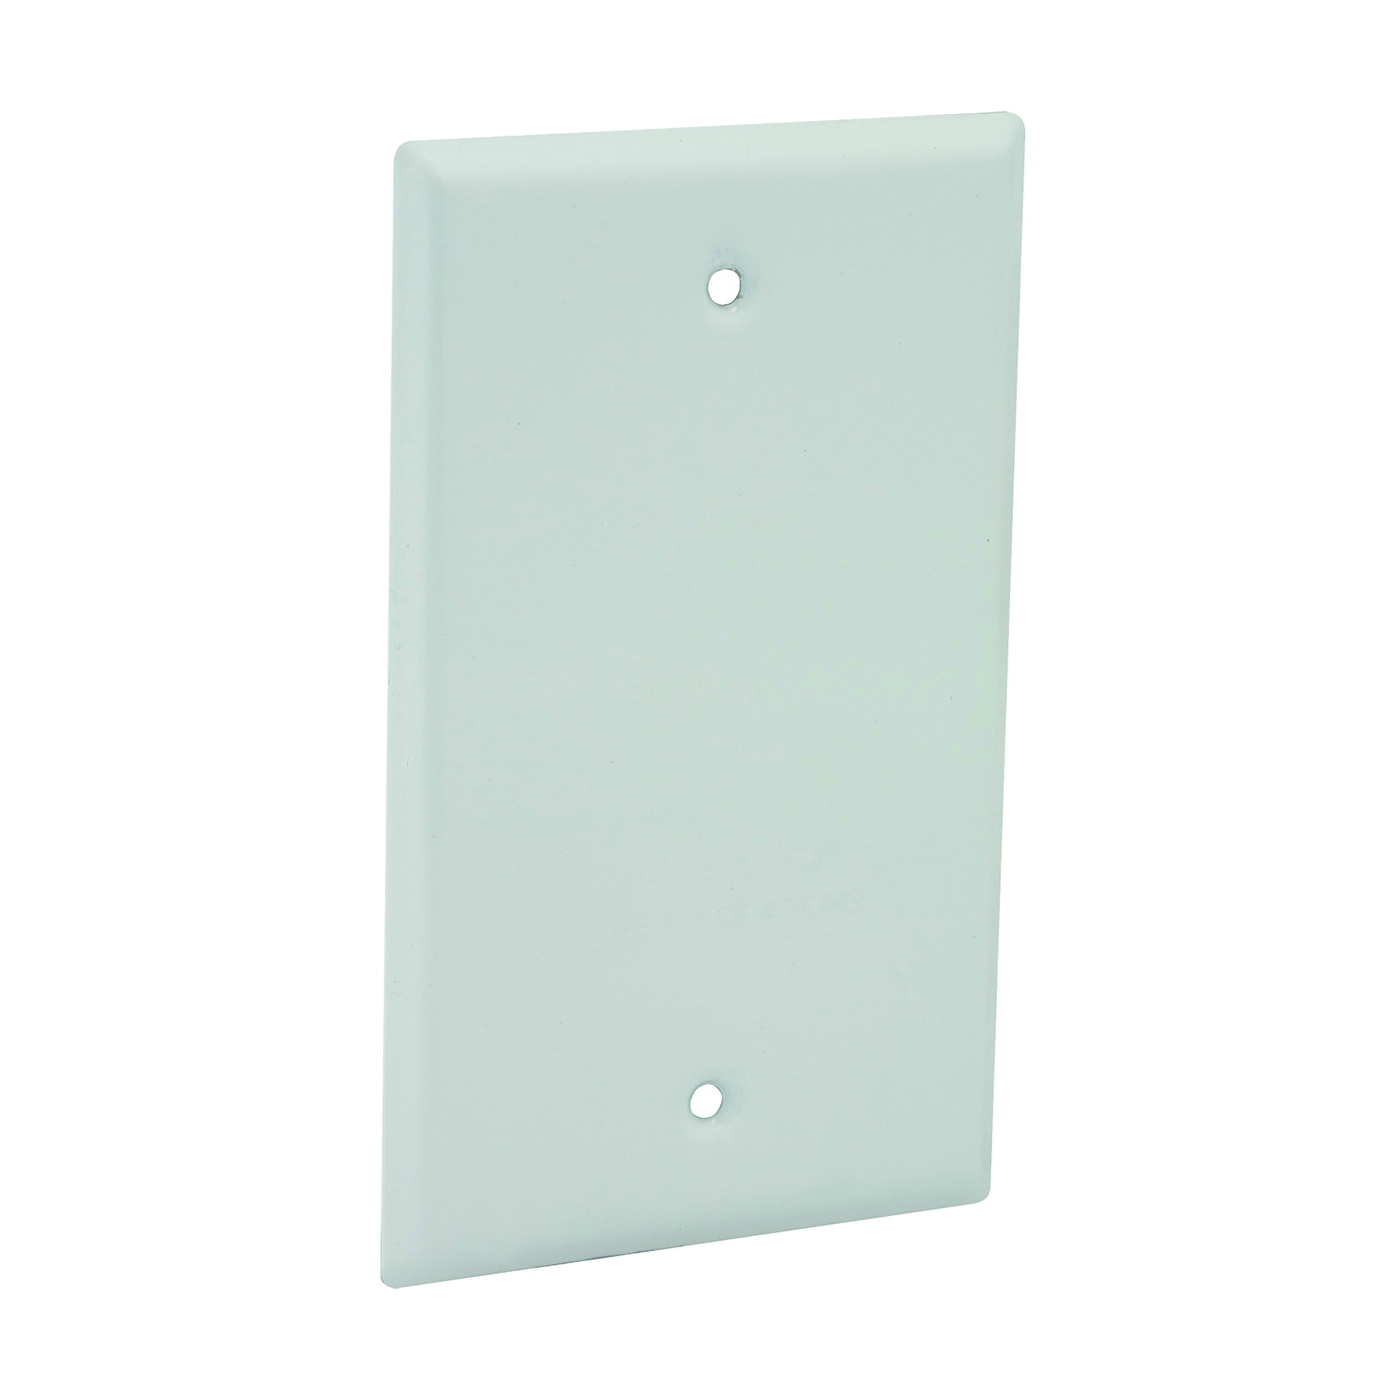 Picture of HUBBELL 5173-1 Cover, 4-17/32 in L, 2-25/32 in W, Metal, White, Powder-Coated